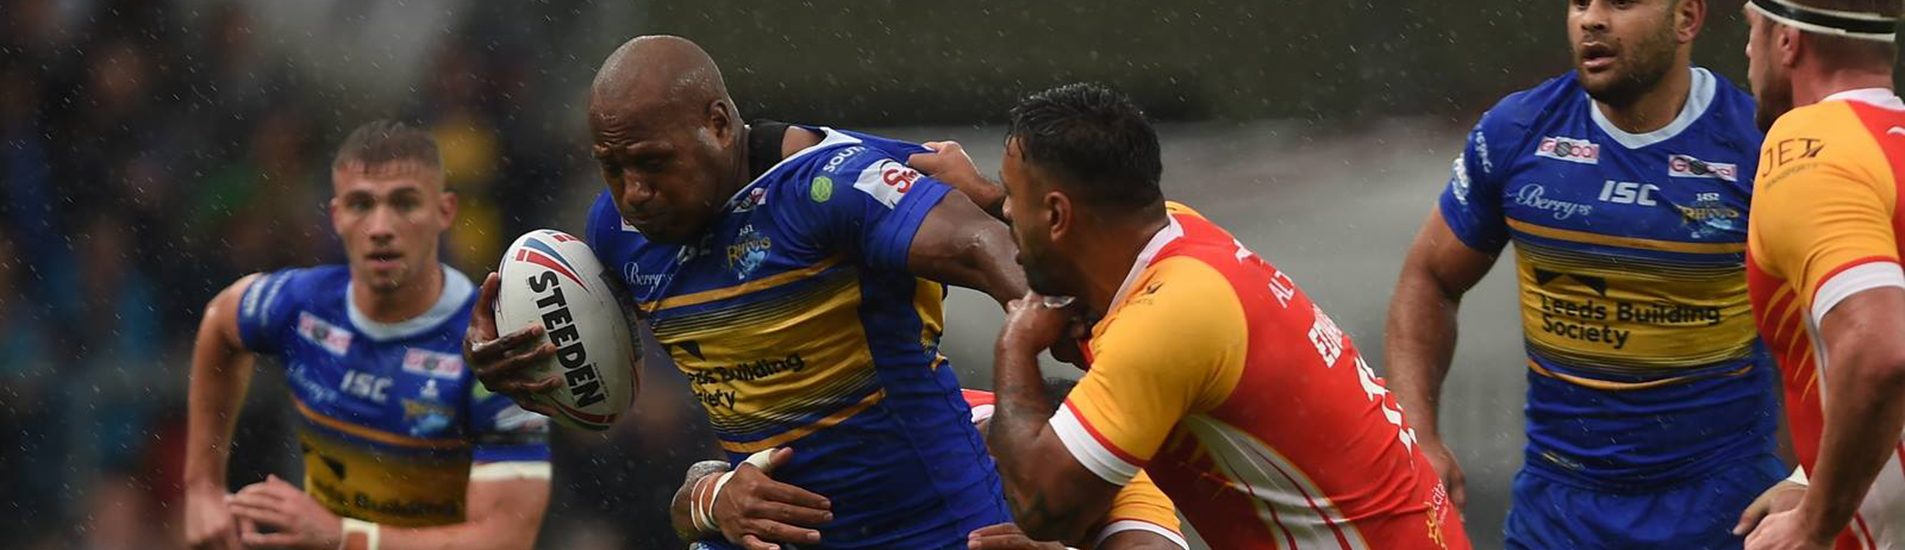 Leeds Rhinos match, player being tackled in the pouring rain